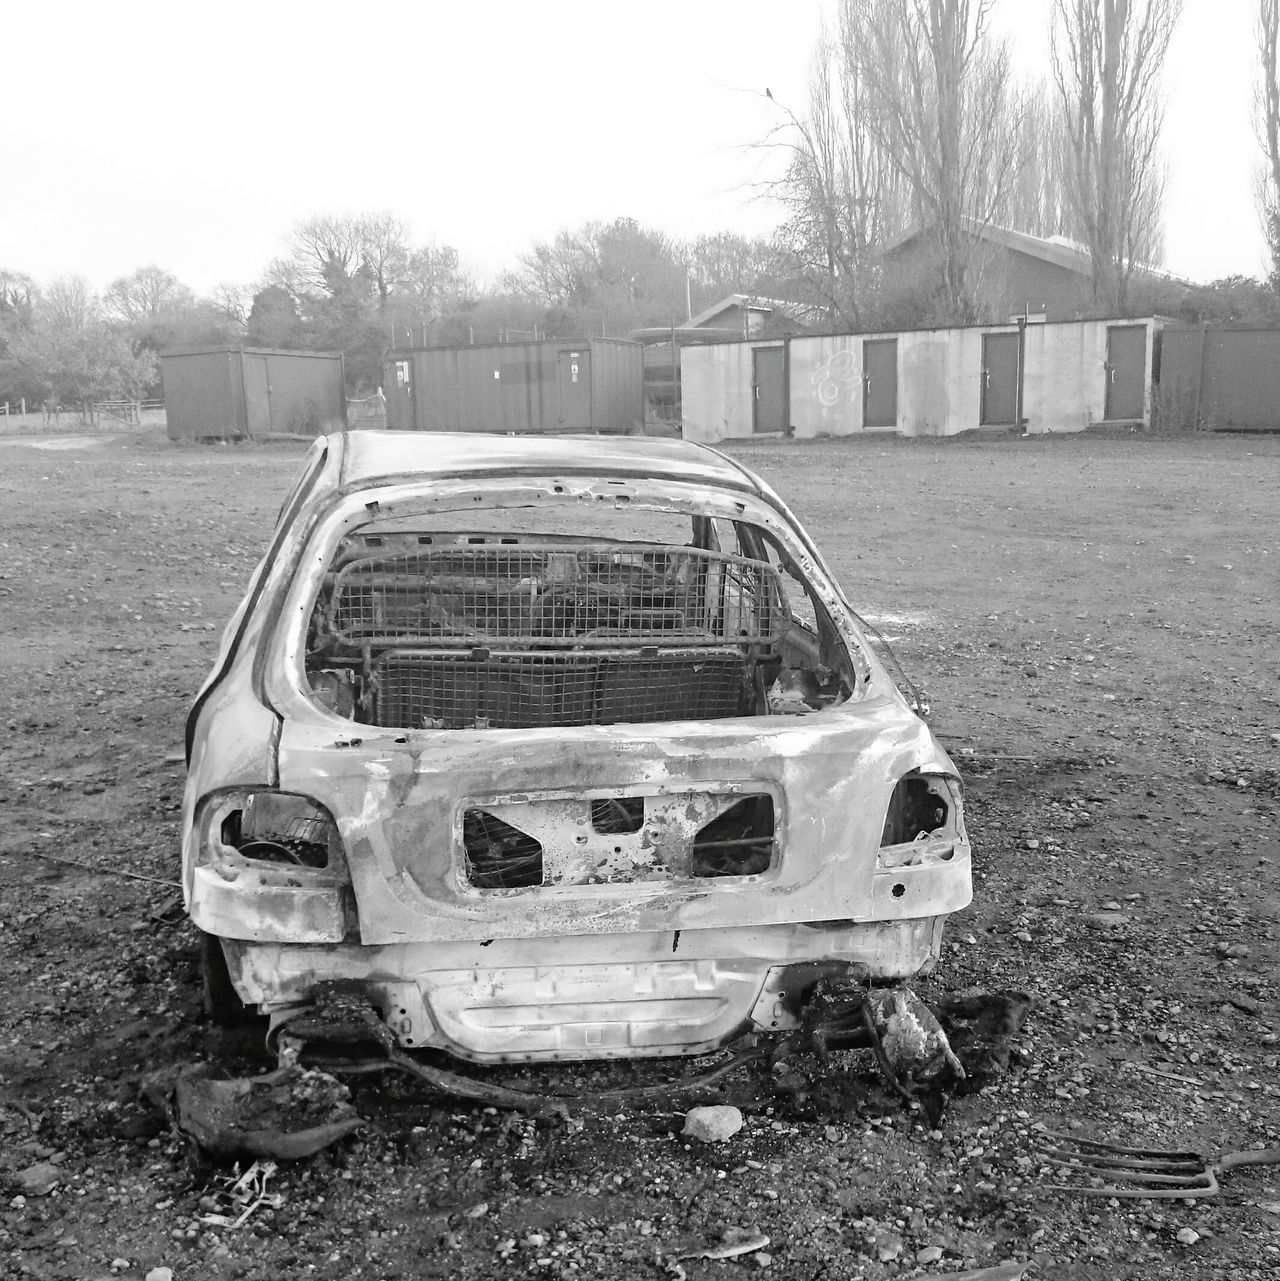 Car Abandoned Streetphotography Abandoned Vehicle Street Crime Outdoors Urban Streetphoto Walsall